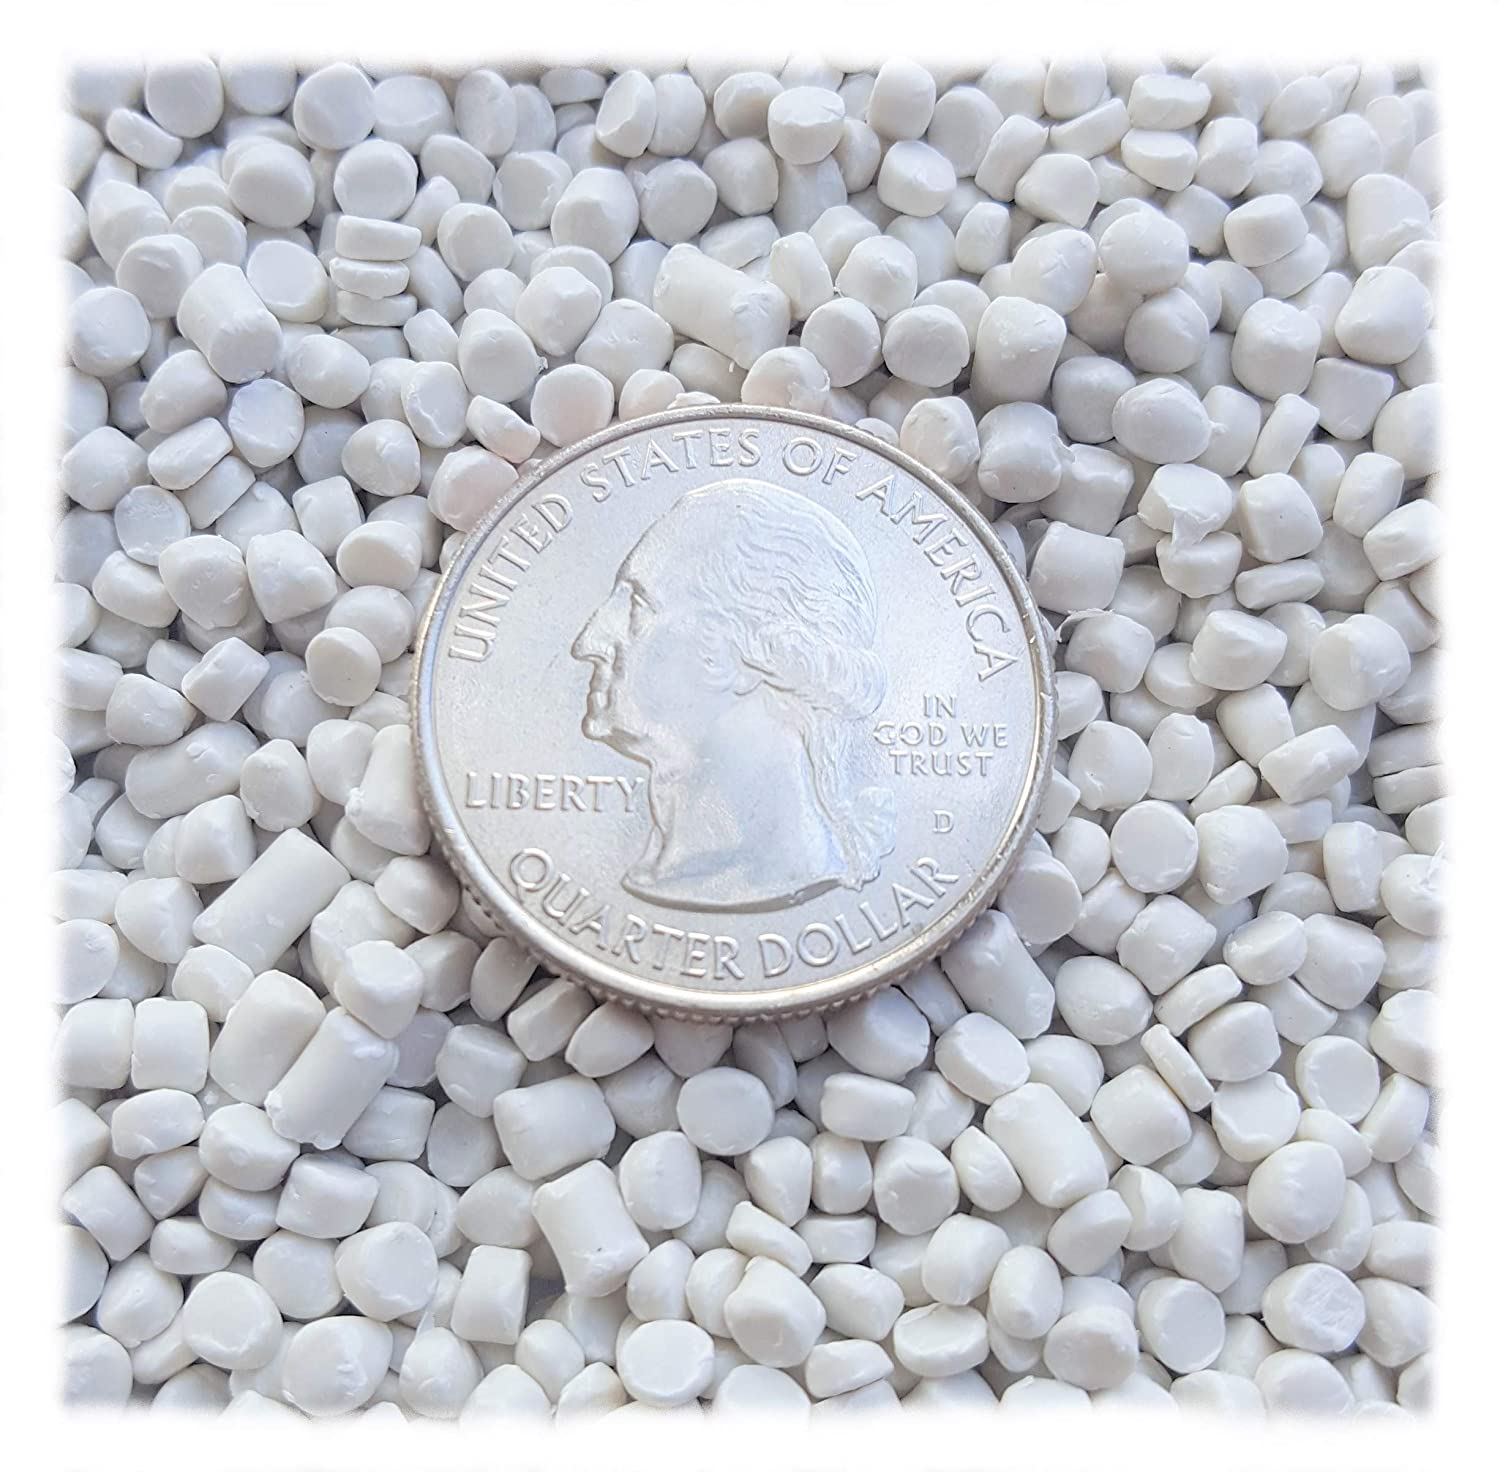 Victory Pellets Extra Heavy (20 Pounds) Plastic Pellets for Weighted Blankets, Corn Hole Bags, Reborn Dolls, Bears, Crafts, Draft Stoppers, Game Changer Bags. Machine Washable & Dryable. Made in USA. Victory Plastic Inc.